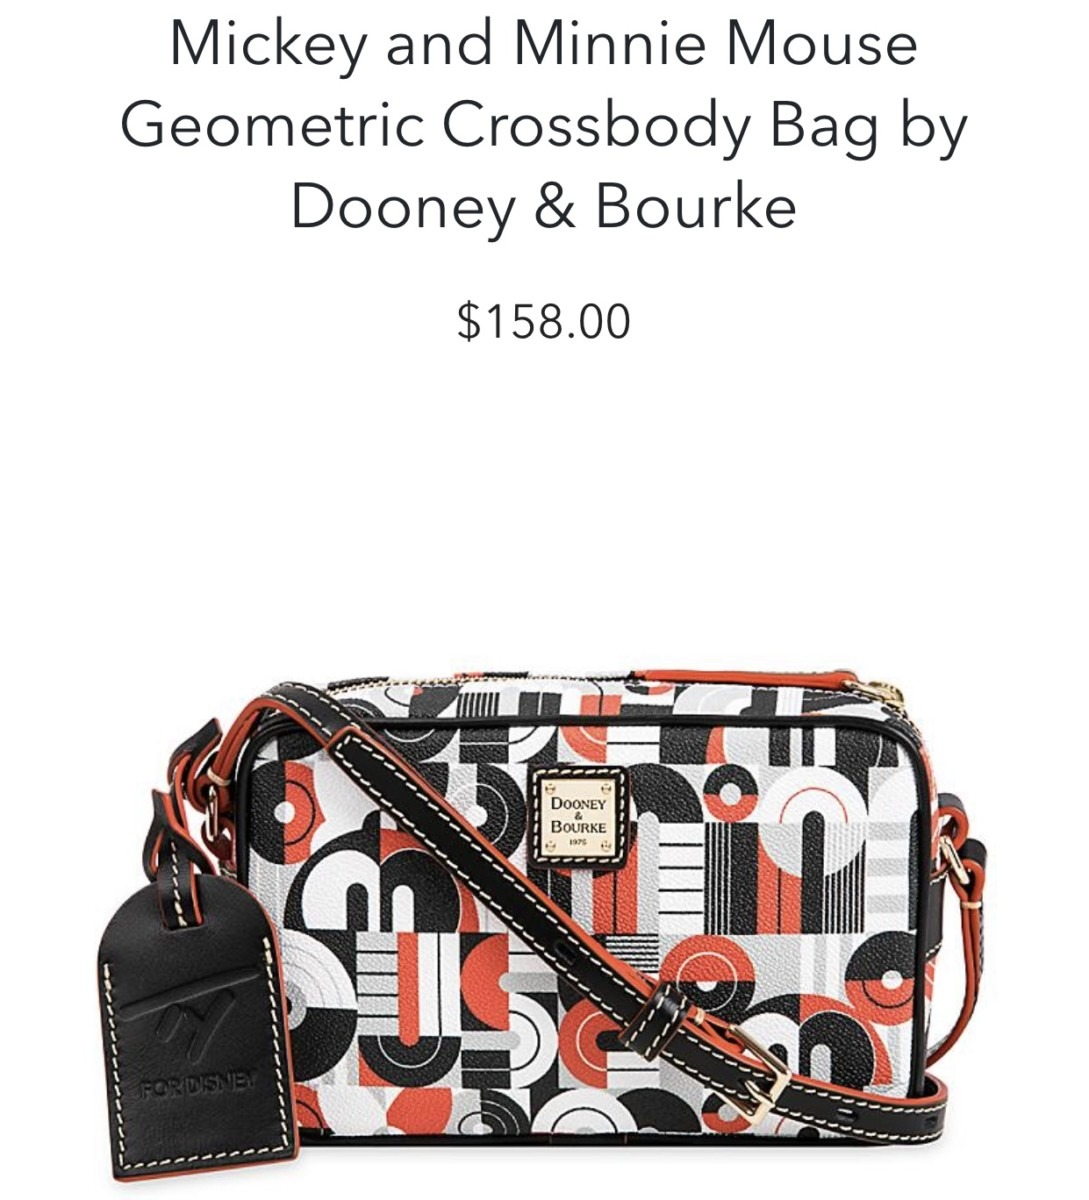 New Tyler Dumas Designed Dooney & Bourke Bags on shopDisney 2